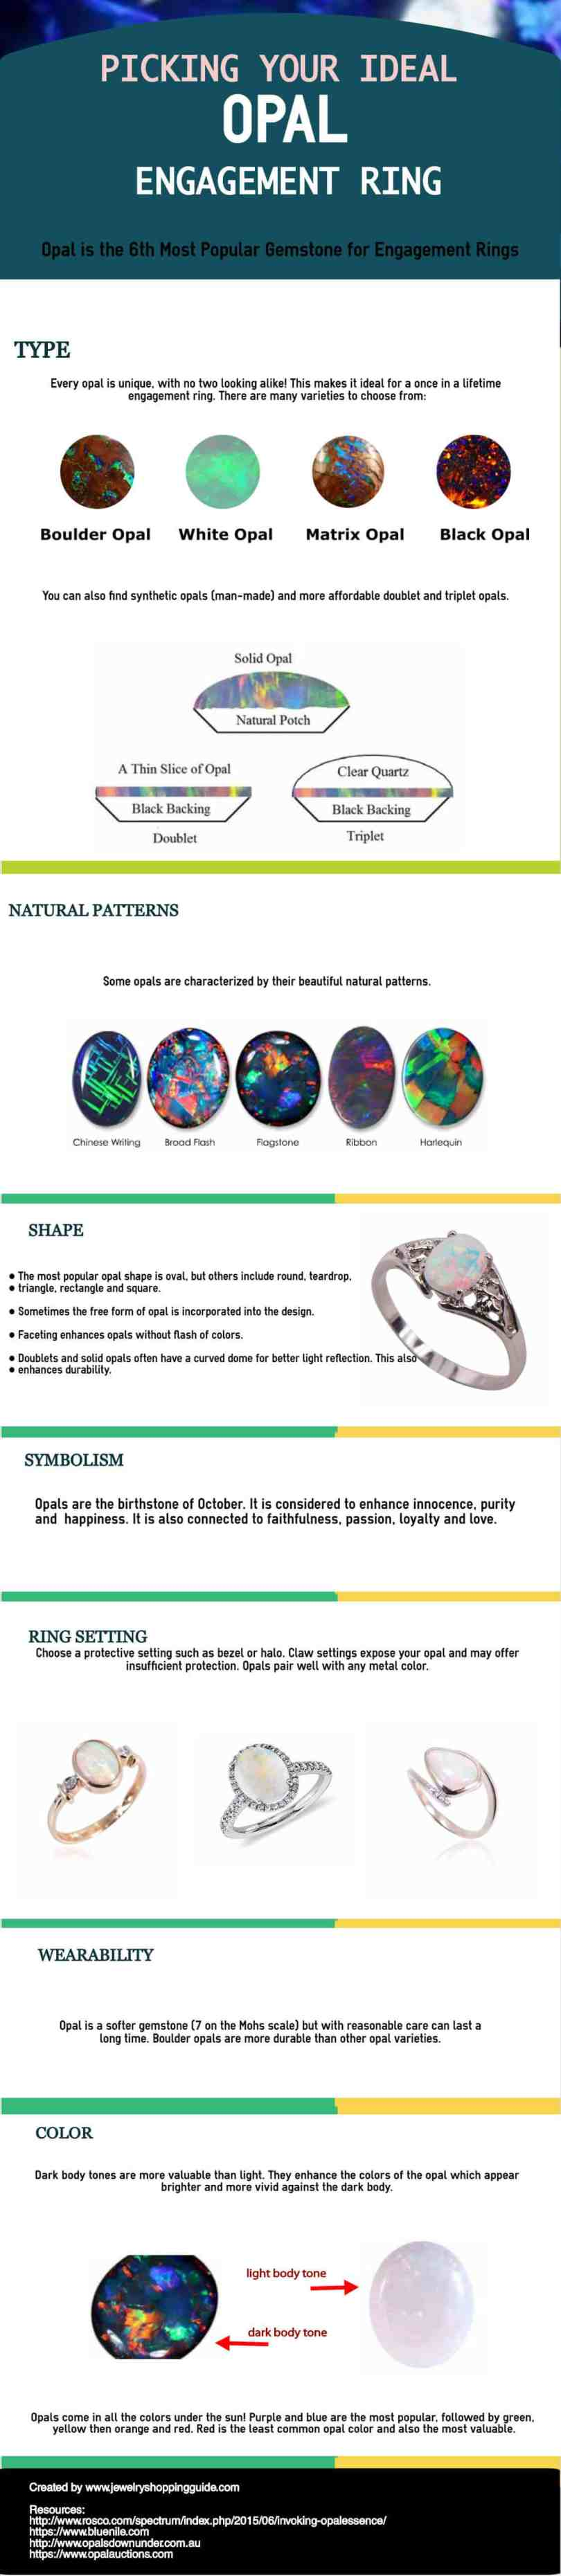 Opal engagement ring infographic